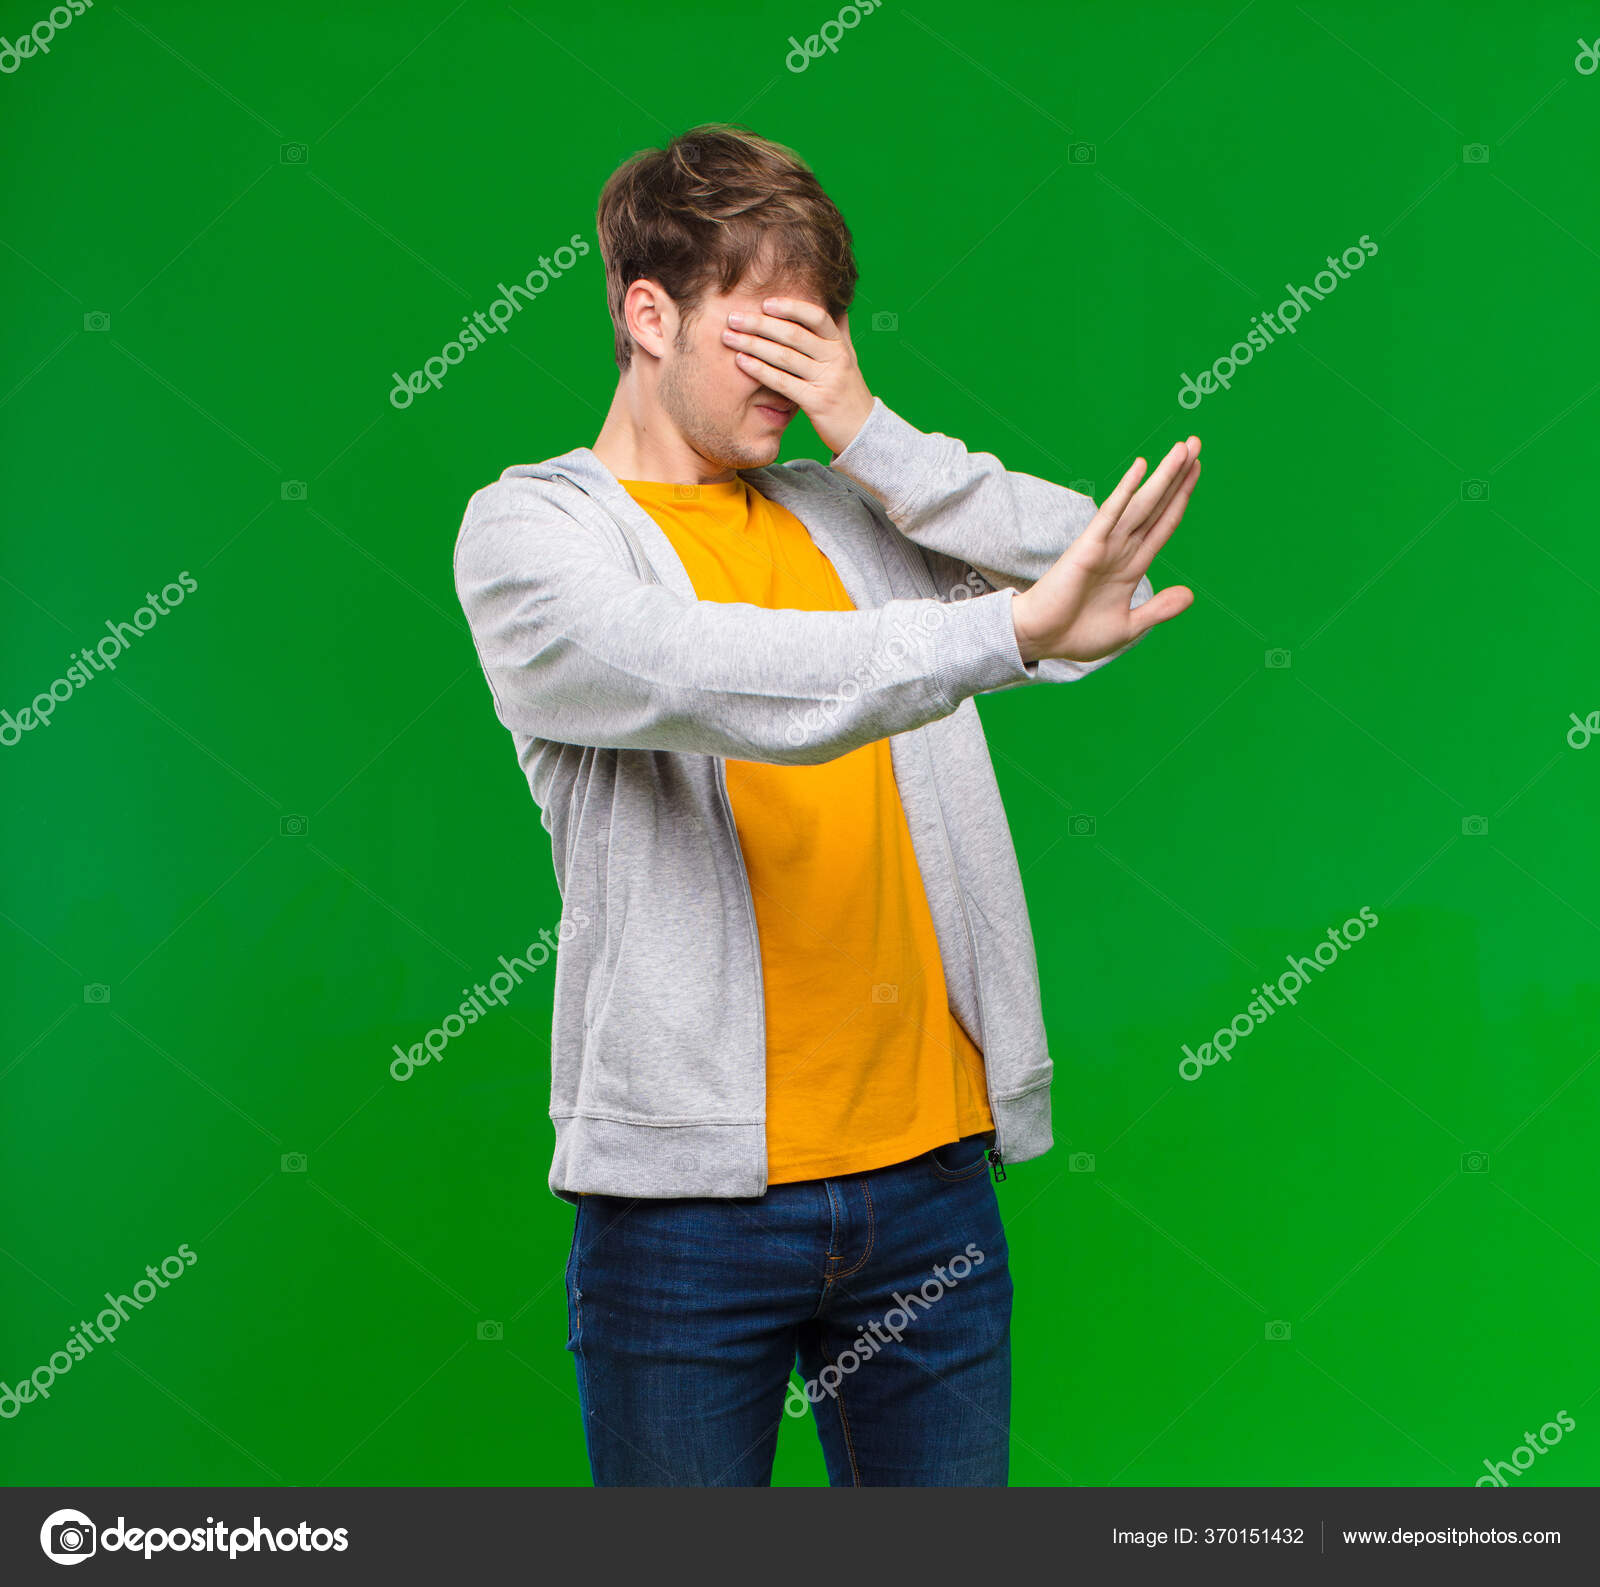 https tr depositphotos com 370151432 stock photo young blonde man covering face html